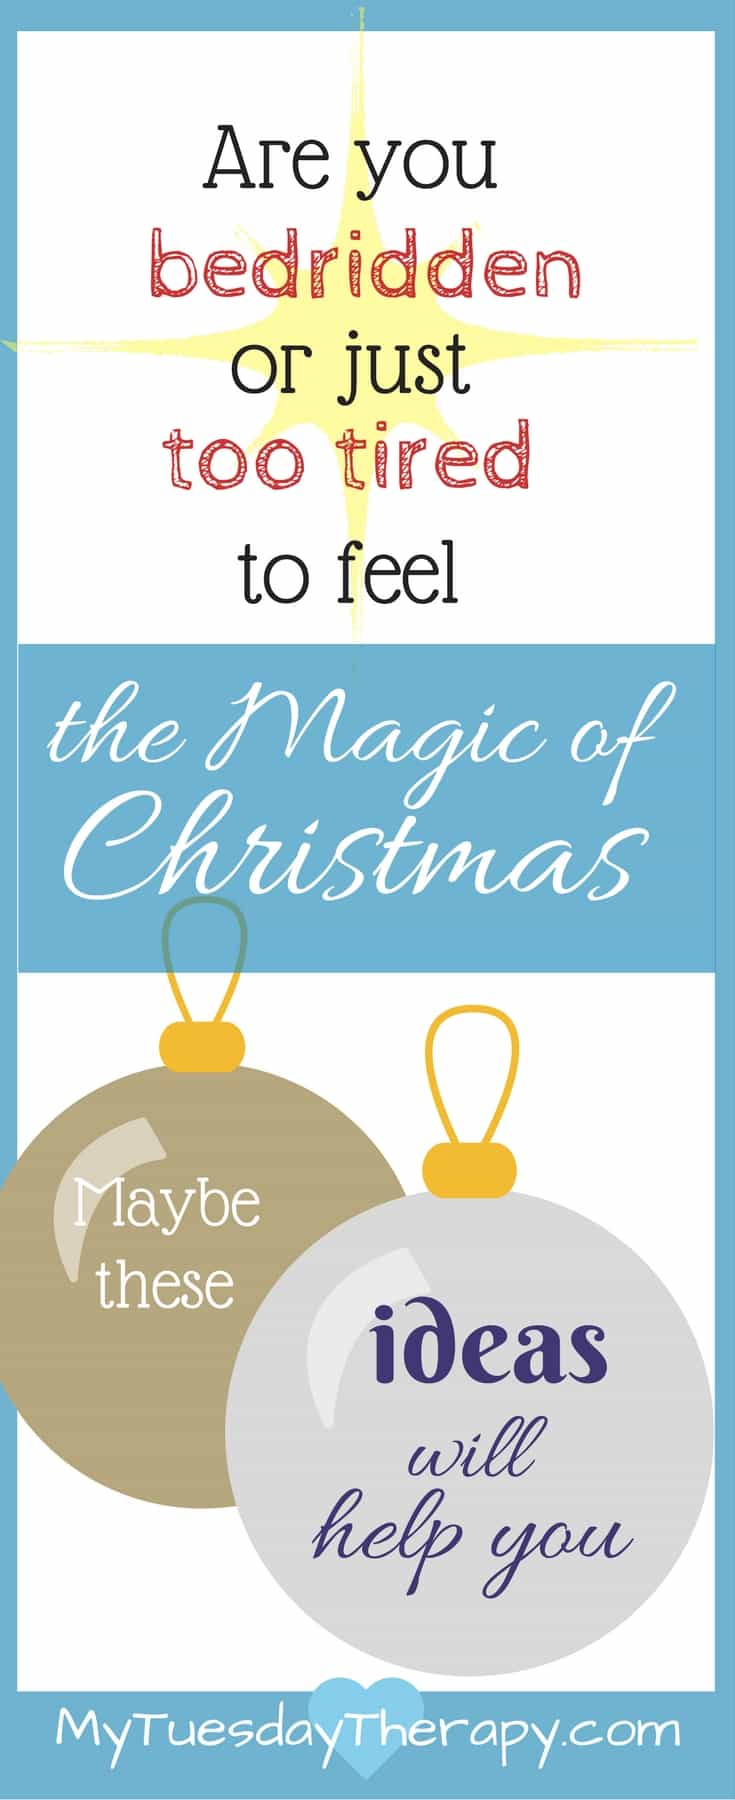 Get into the Christmas Spirit with these tips! Chronic Illness can be hard around Christmas but these ideas will help you to create a Magical Christmas for yourself or your loved one who has a chronic illness. #chronicillness #christmas #adrenalfatigue #chronicfatigue #mytuesdaytherapy